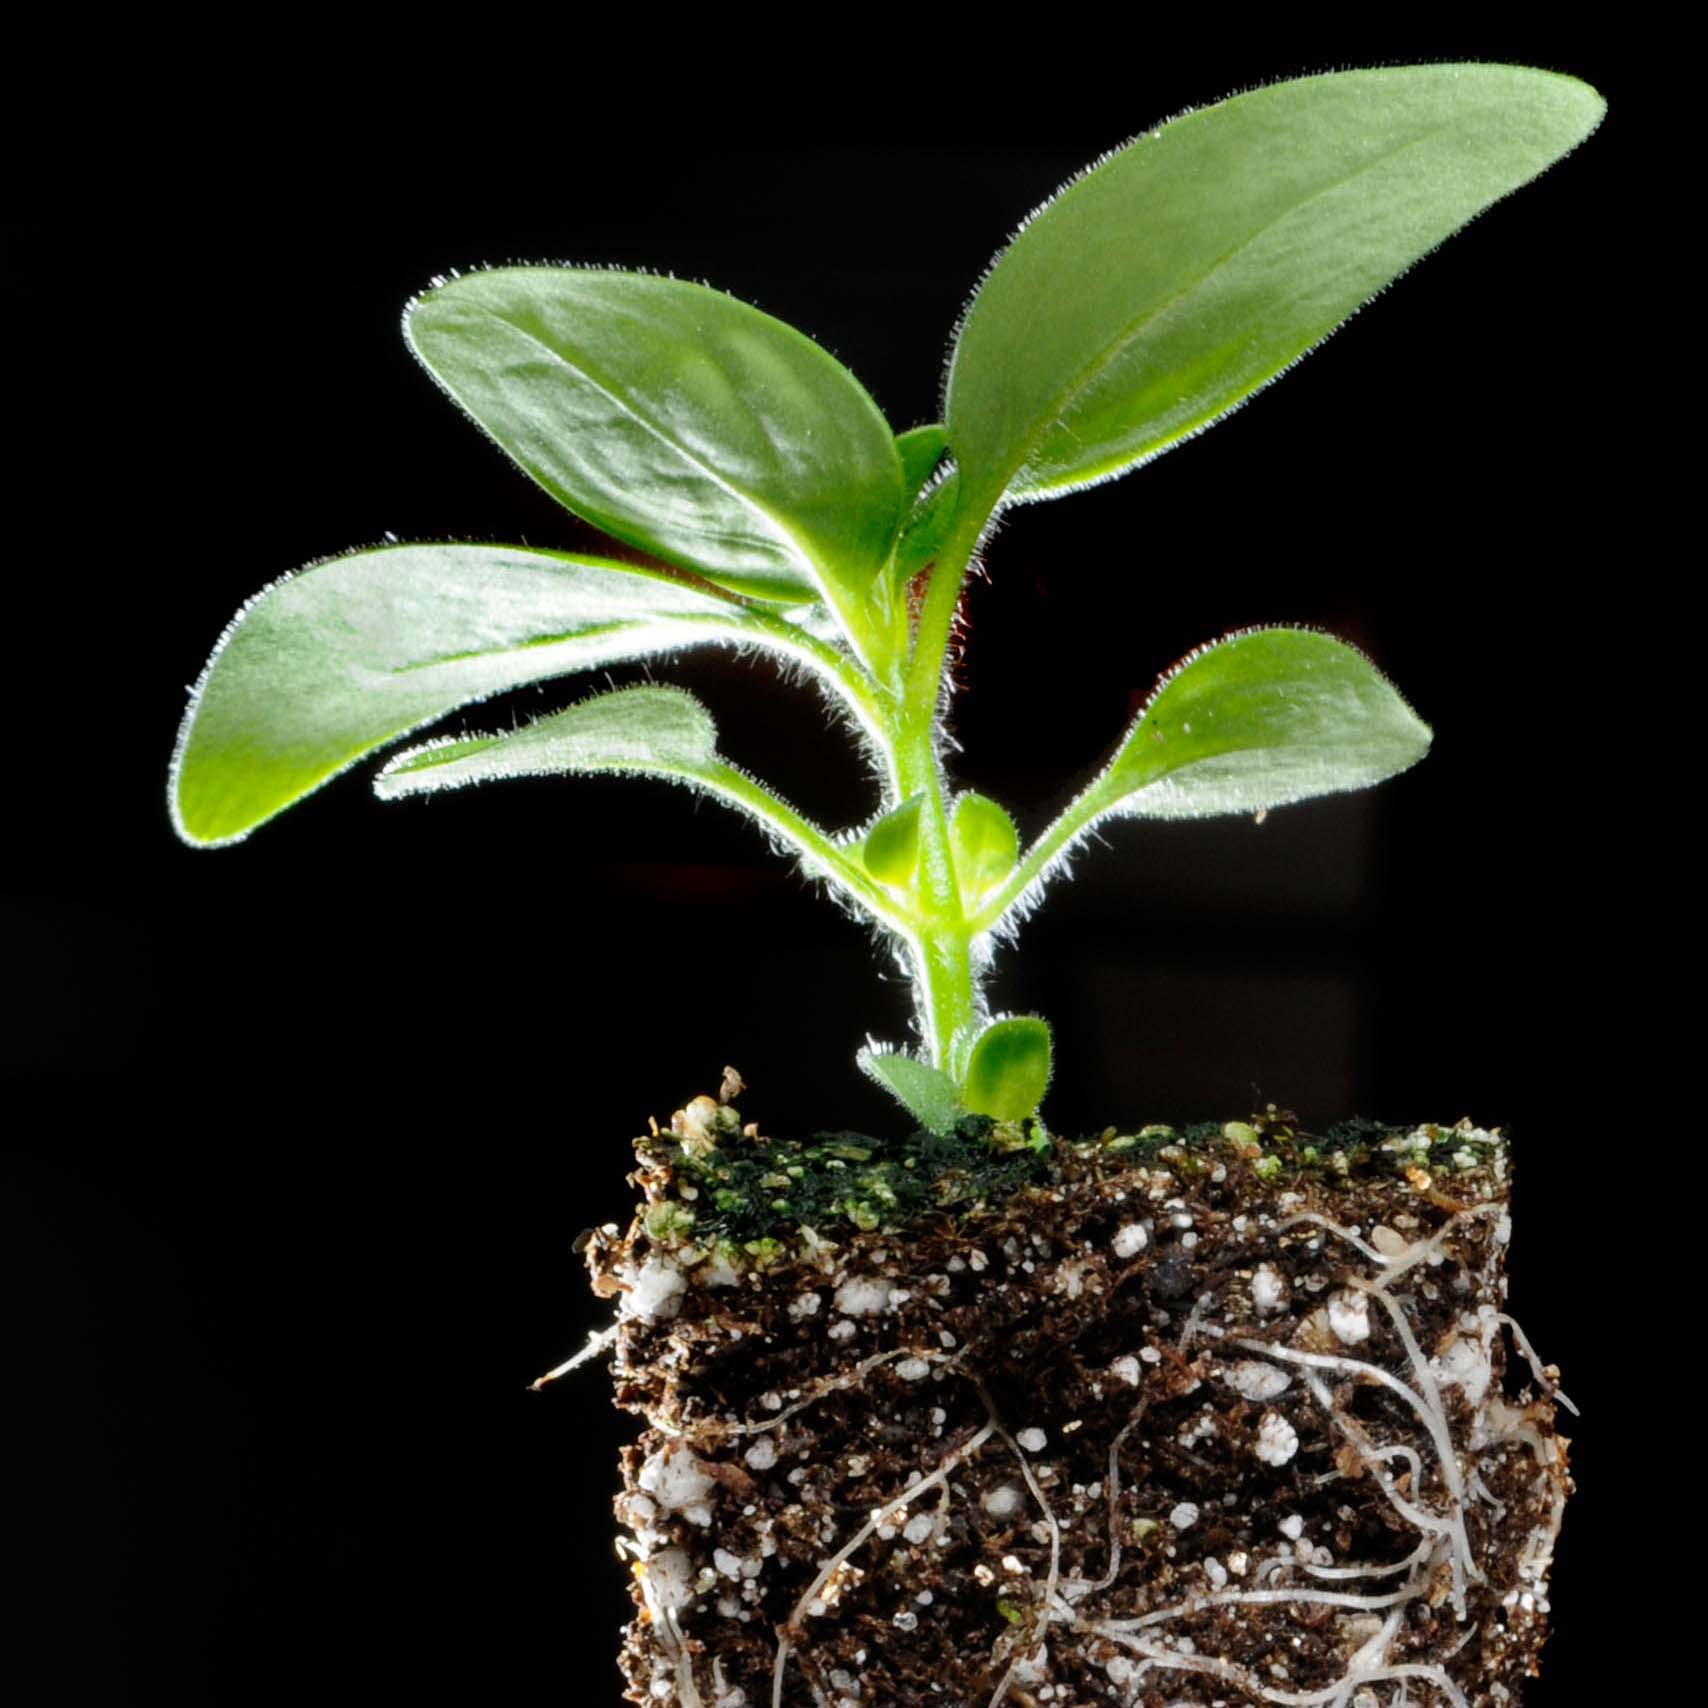 PHOTO: Plant and roots.